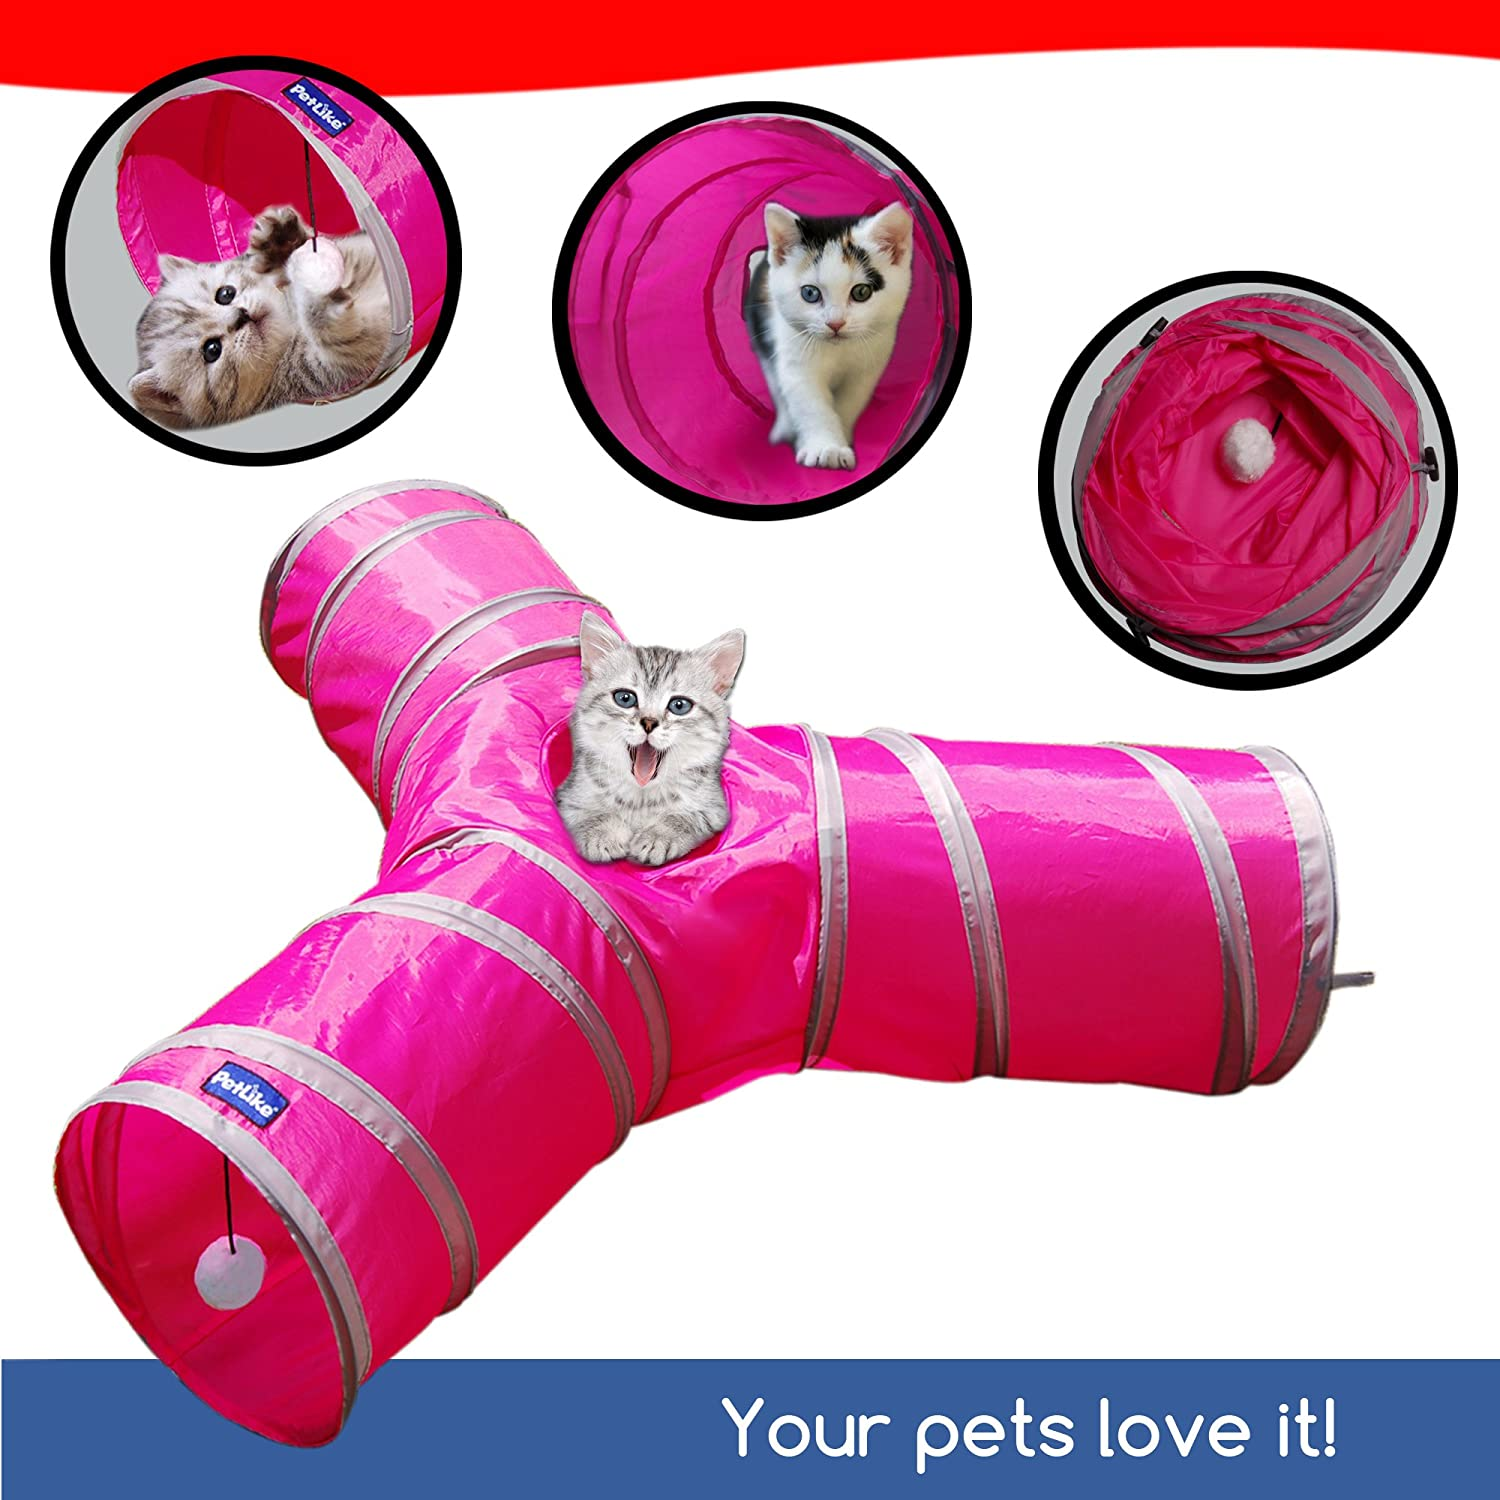 pink red PetLike 3 Way Tunnel for Cats by Three Way Kitten Toy, Collapsible Cat Tube for Exercise, Entertainment & Run   Durable & Comfortable Hideaway   Pet Friendly & Fun for Kittens, Small Dogs & Rabbits